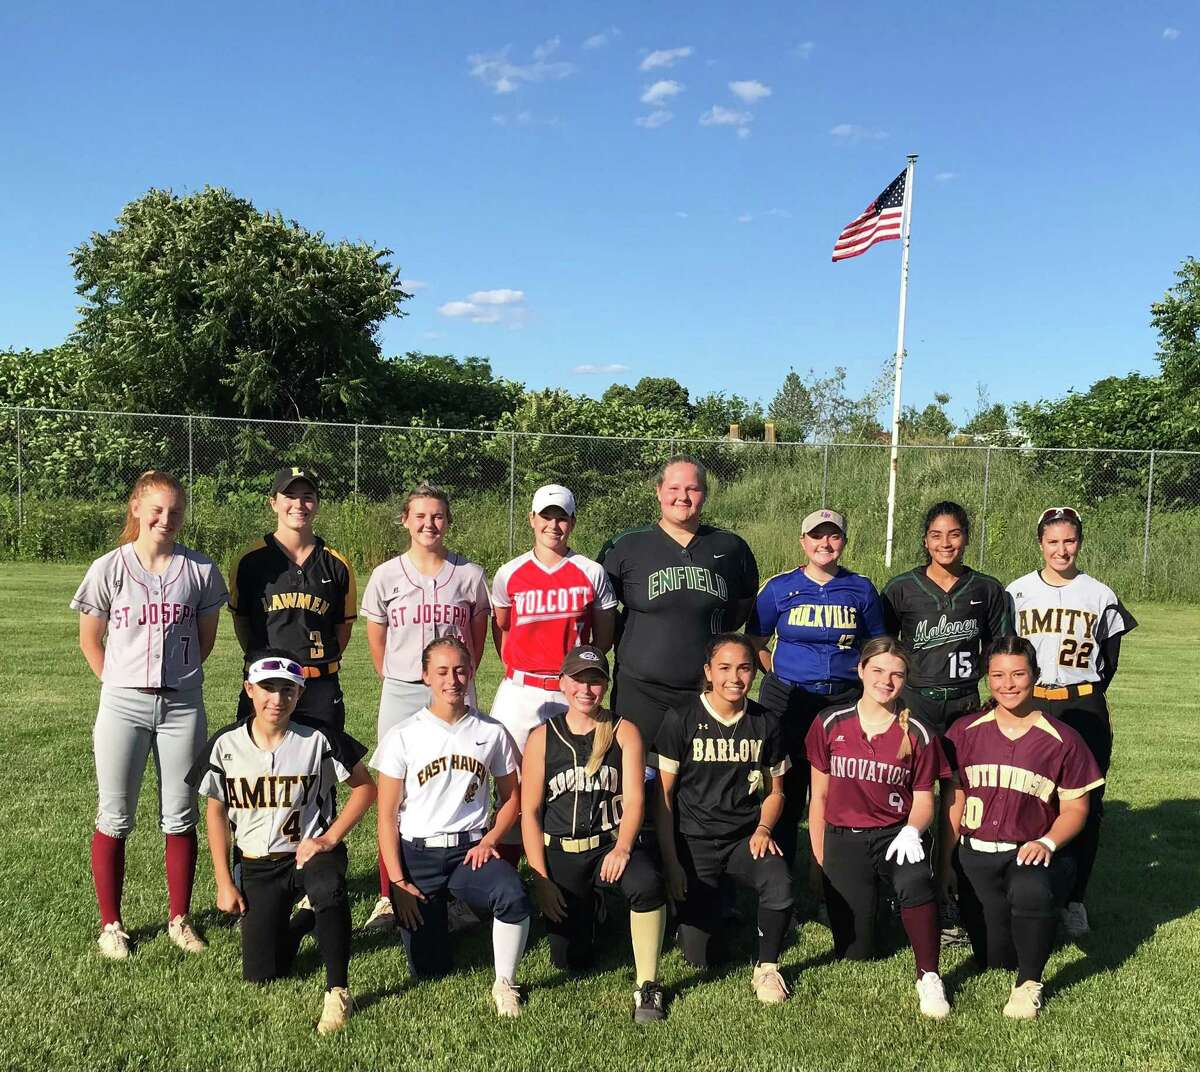 The CT High School All-Star softball team met the Stratford Brakettes for the 21st time onThursday. Team members (front row) are Juliette Zito, Amity; Sammie Franceschi, East Haven; May Dowes, Woodland; Abby Ota Barlow, Kaylee Dobransky, Academy of Sciences/Innovation and Kenadie Gonzalez, South Windsor; (second row) Brittany Mairano, St. Joseph; Maddie Lula, Jonathan Law; Maddy Fitzgerald, St. Joseph; Katie Cosmos, Wolcott; Makenzie Cray, Enfield; Alexandra Silver, Rockville; Milycza Perez, Maloney and Kelly Pritchard, Amity.